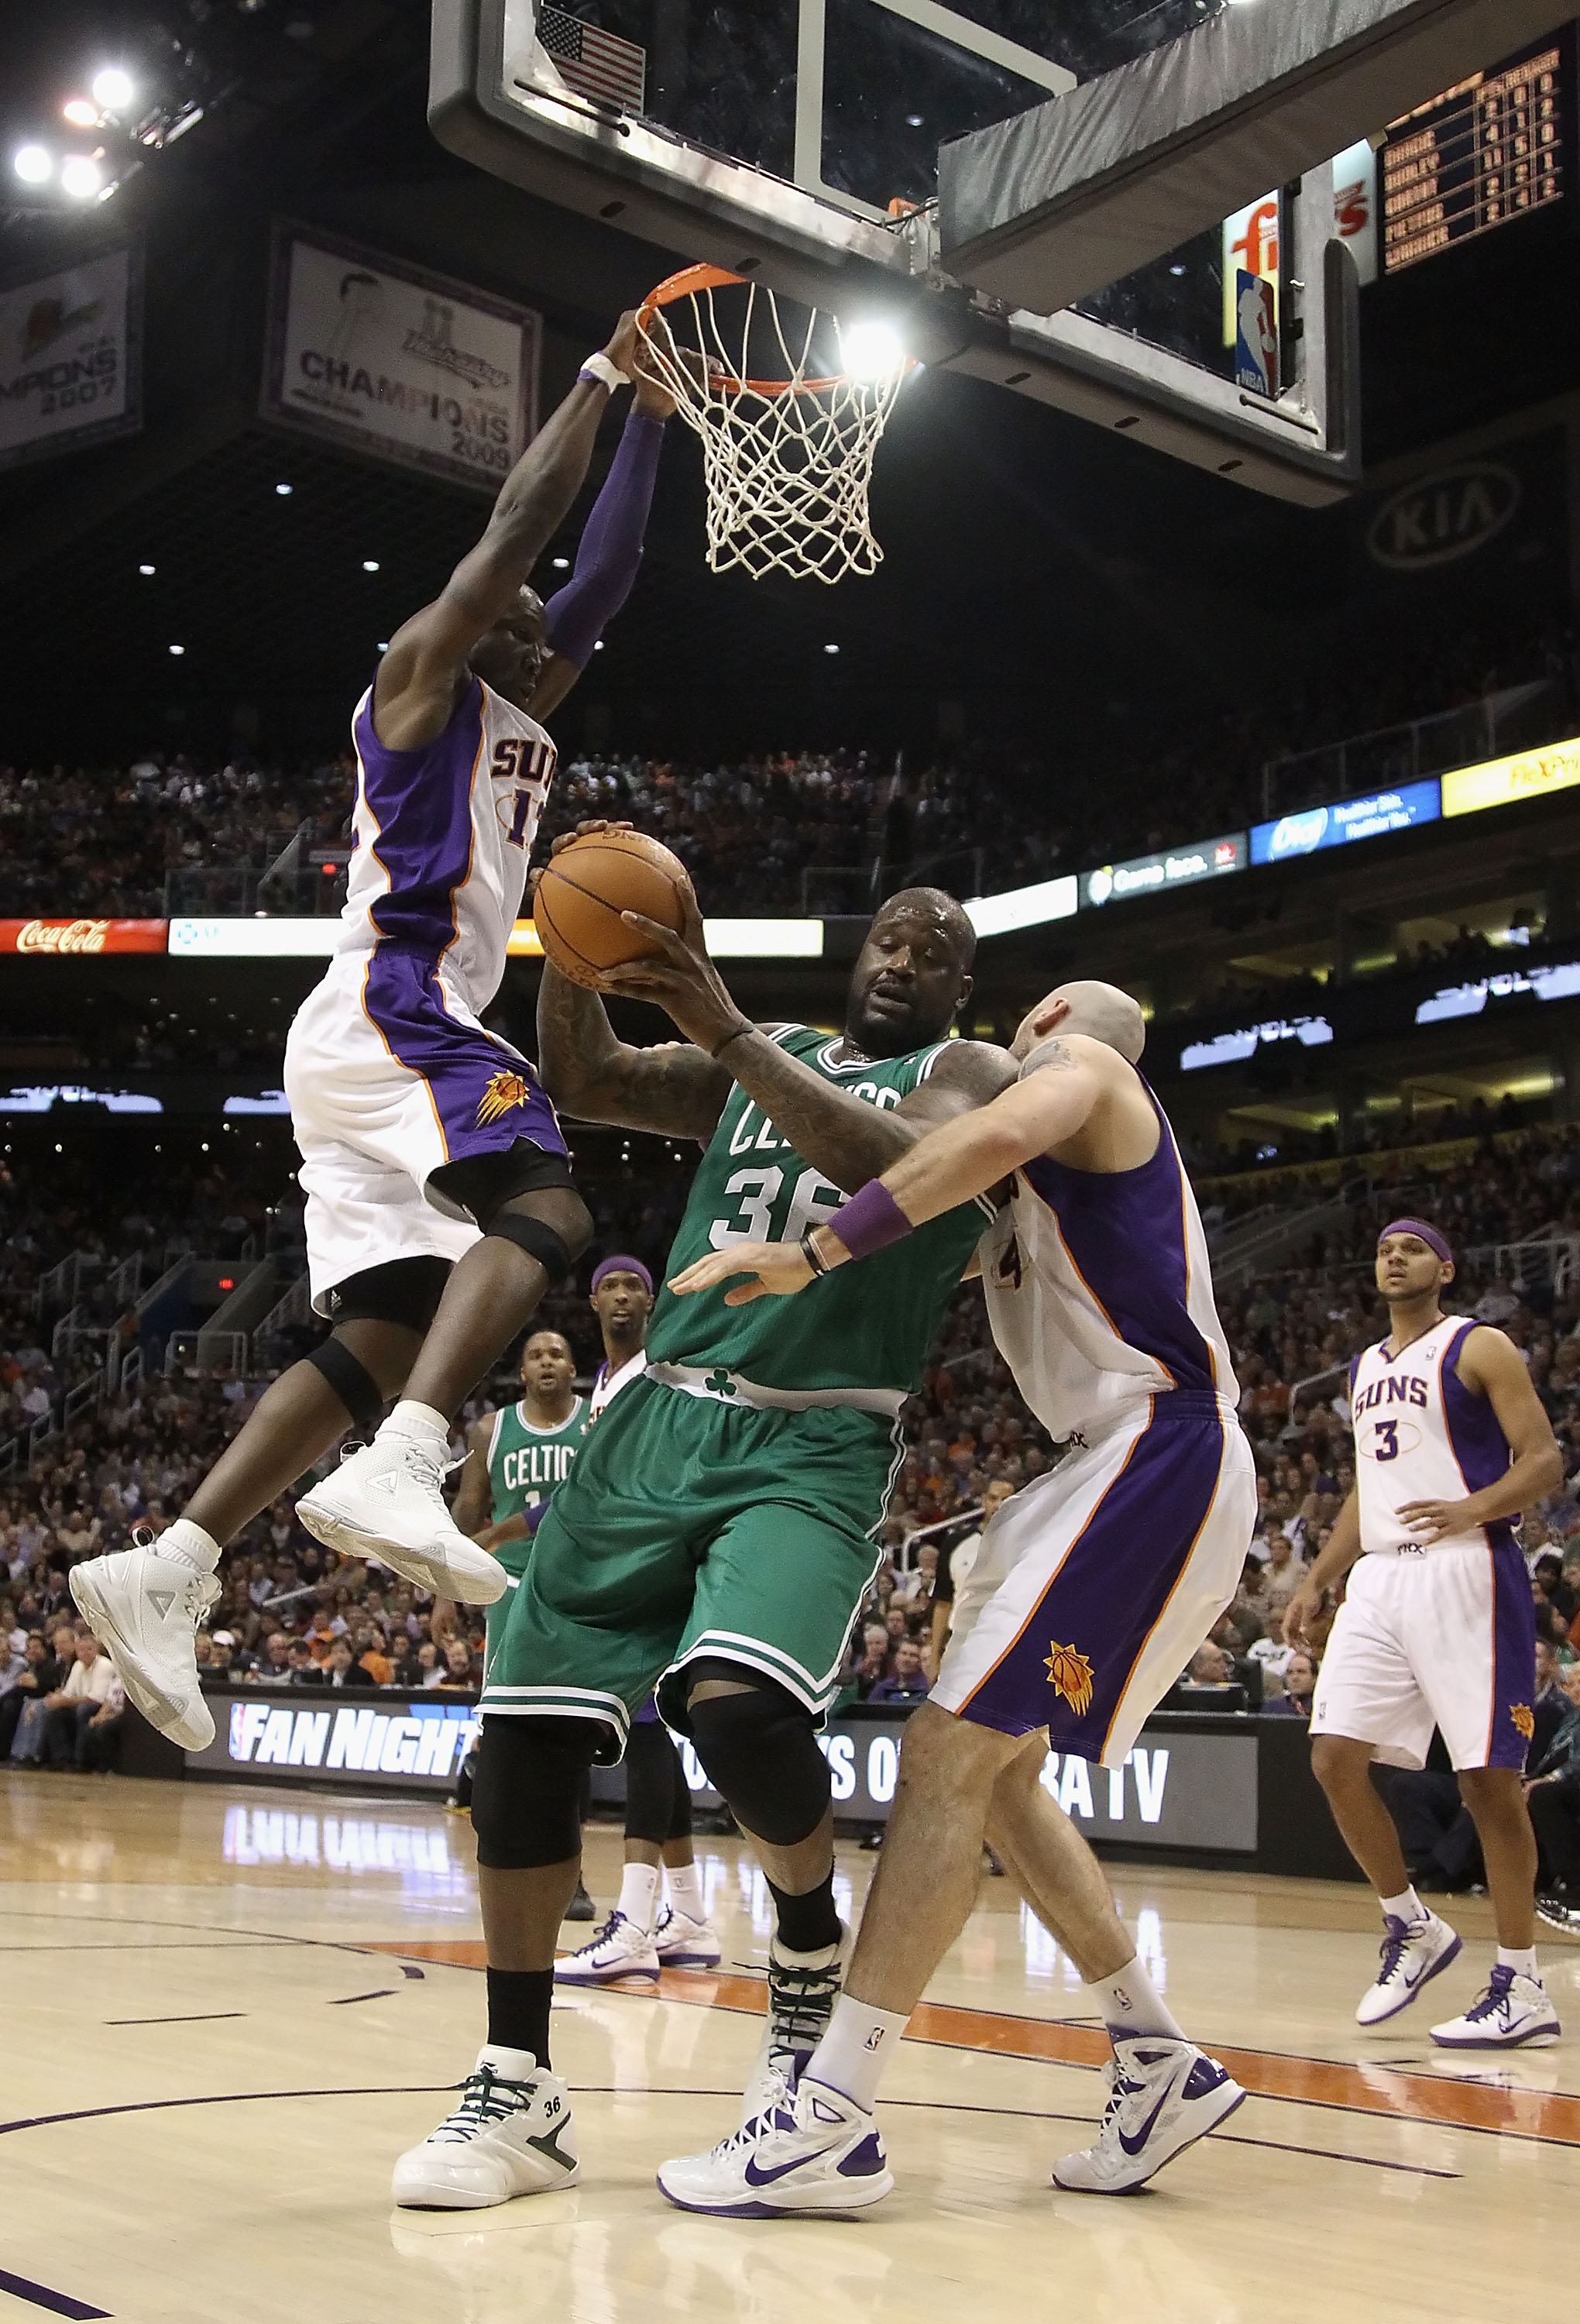 PHOENIX, AZ - JANUARY 28:  Shaquille O'Neal #36 of the Boston Celtics handles the ball during the NBA game against the Phoenix Suns at US Airways Center on January 28, 2011 in Phoenix, Arizona.  The Suns defeated the Celtics 88-71.  NOTE TO USER: User exp